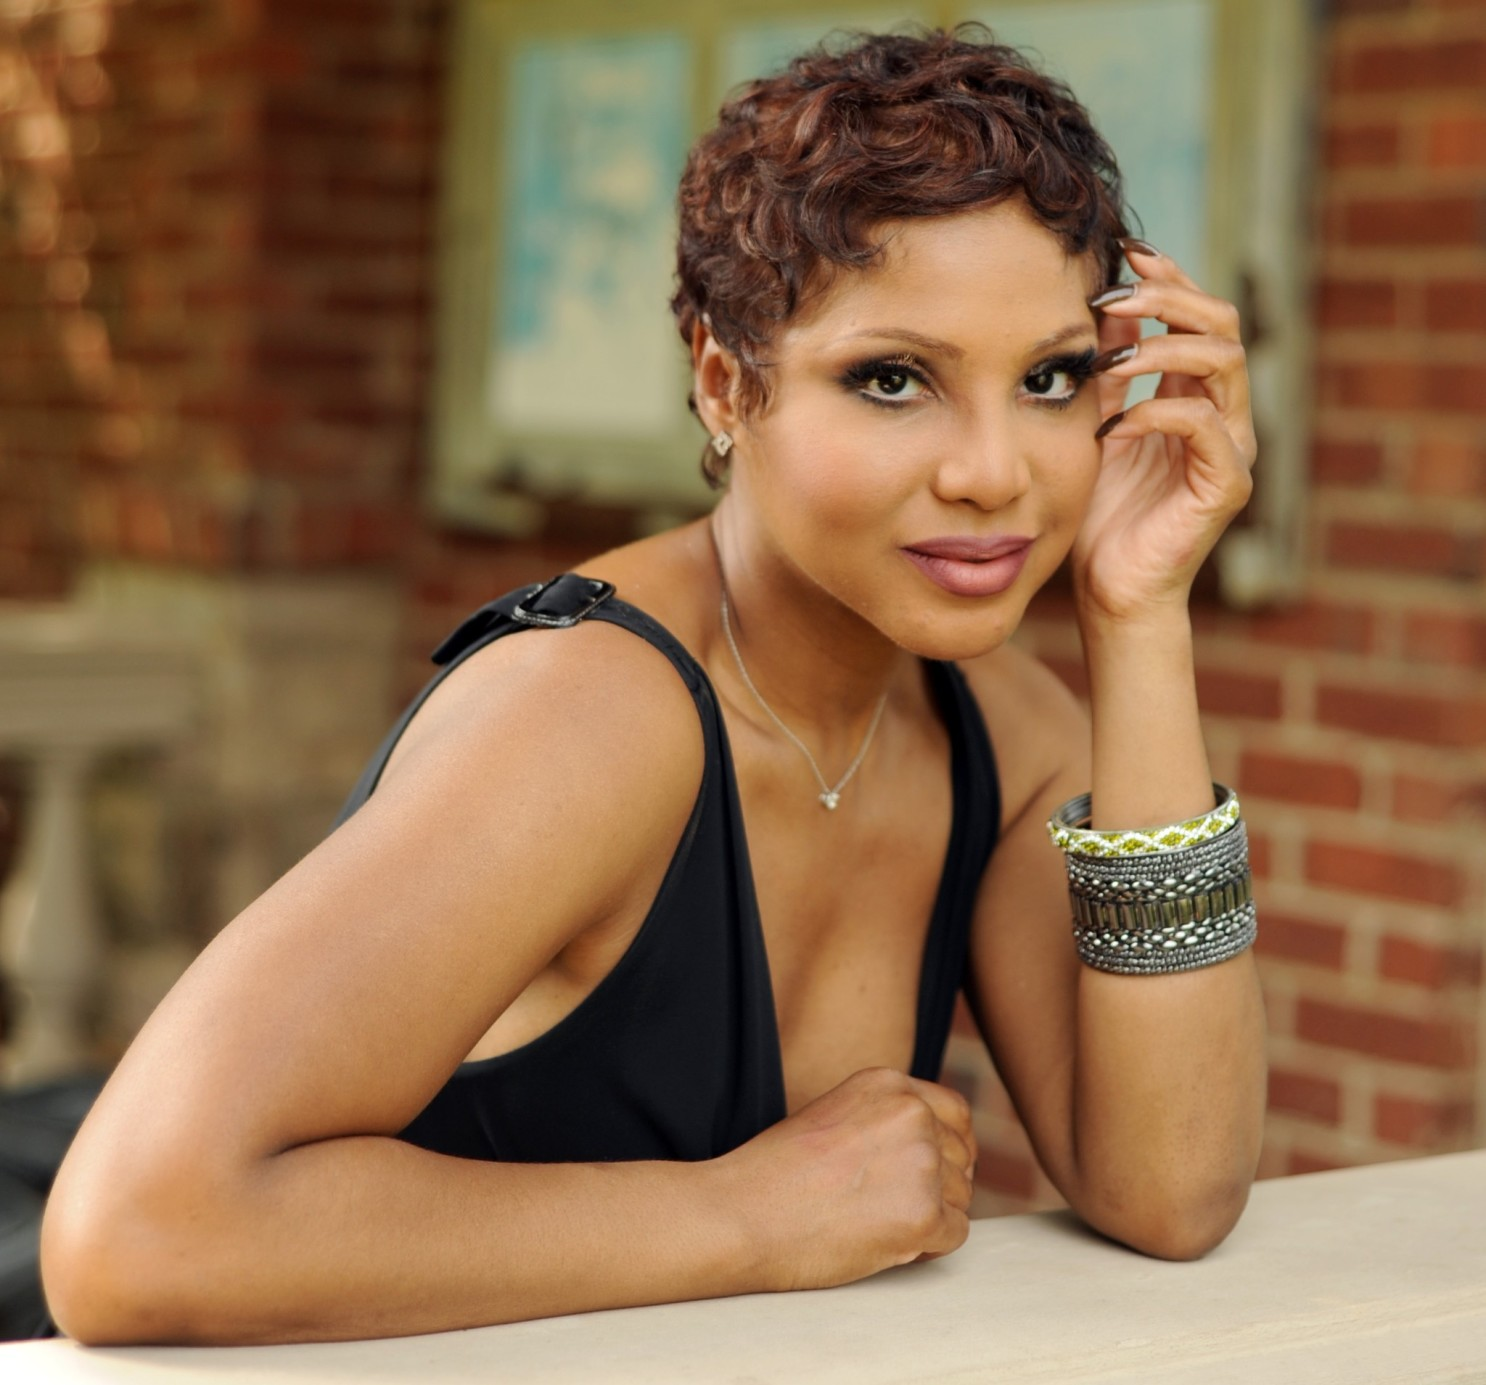 toni-braxtons-fans-are-crazy-with-excitement-about-her-latest-album-spell-my-name